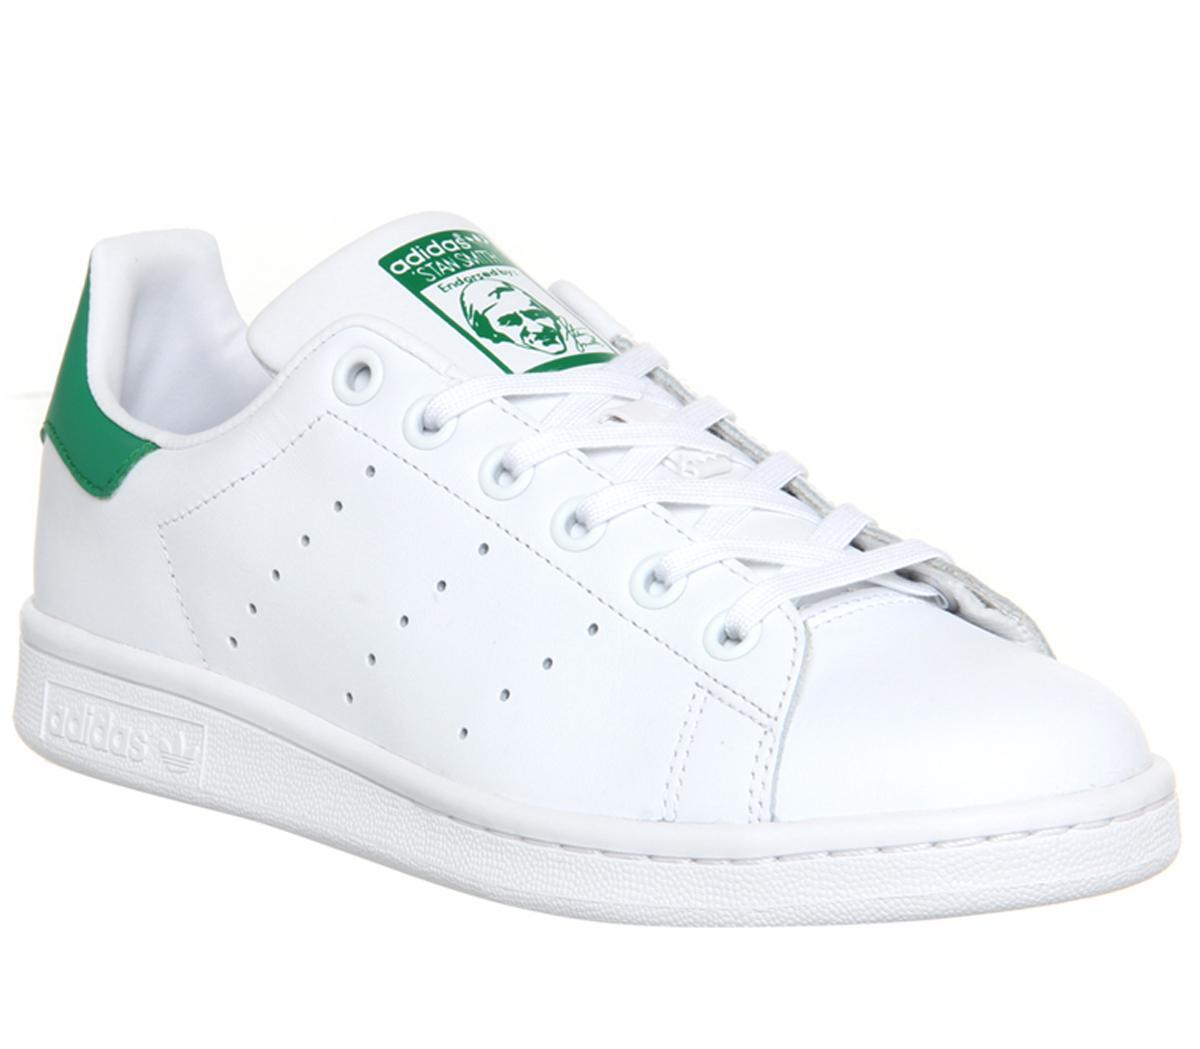 Stan Smith Flash Trainers